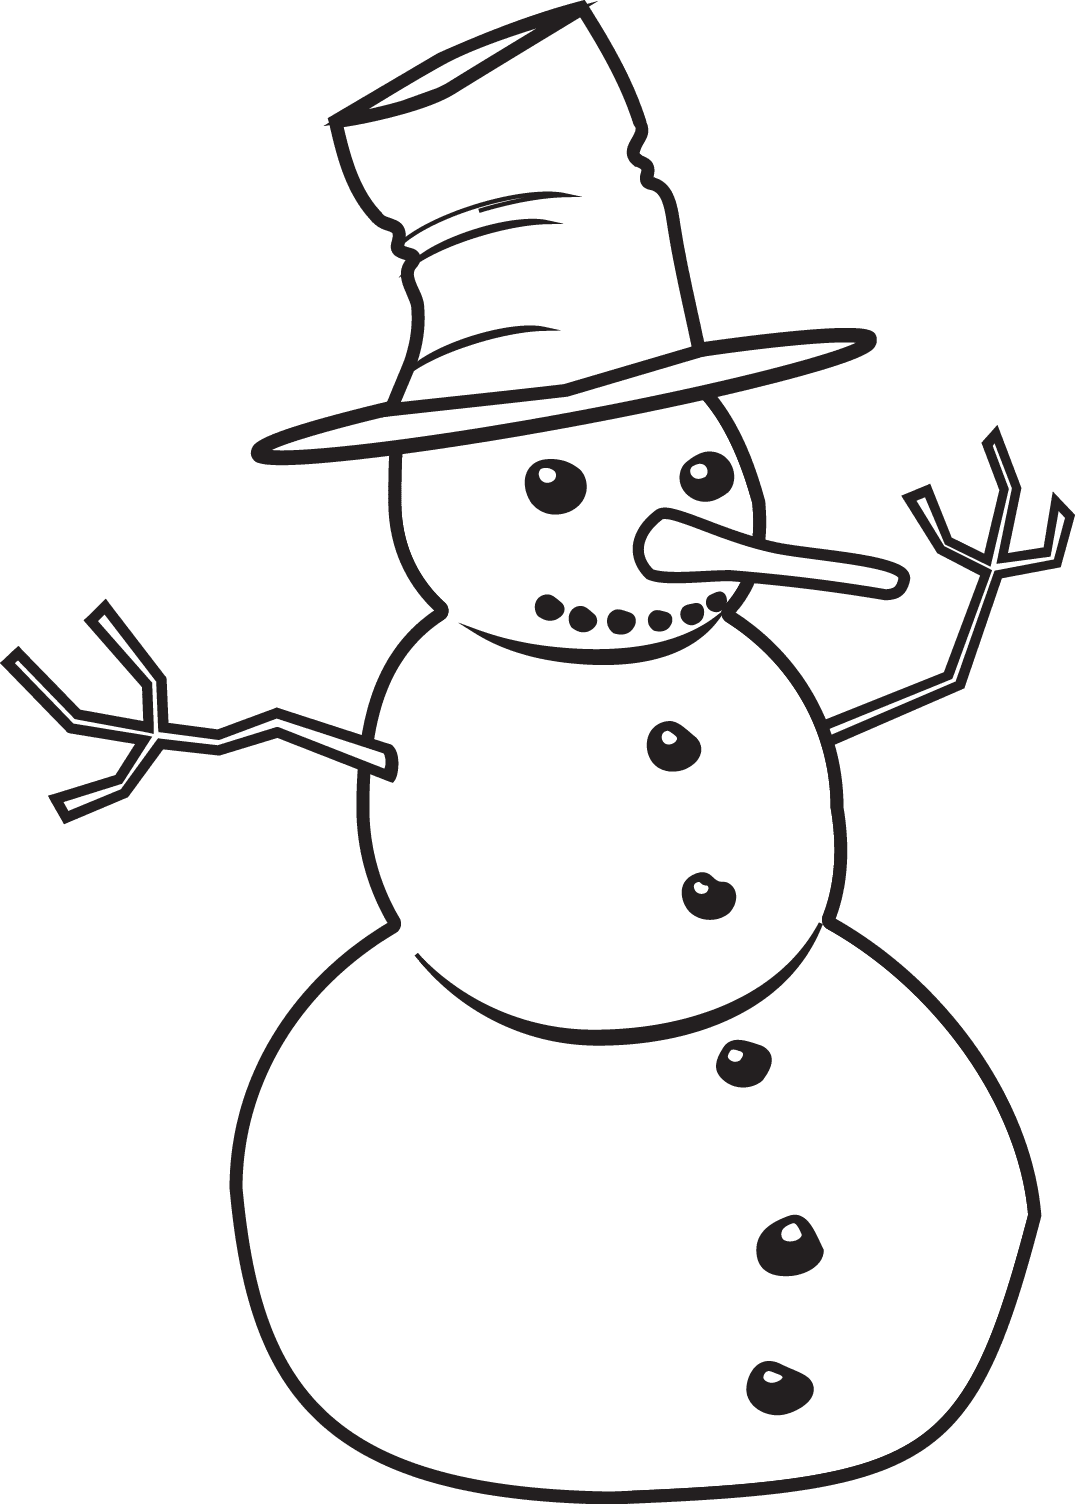 1075 x 1504 png 38kB, Printable Snowman/page/2 | New Calendar Template ...